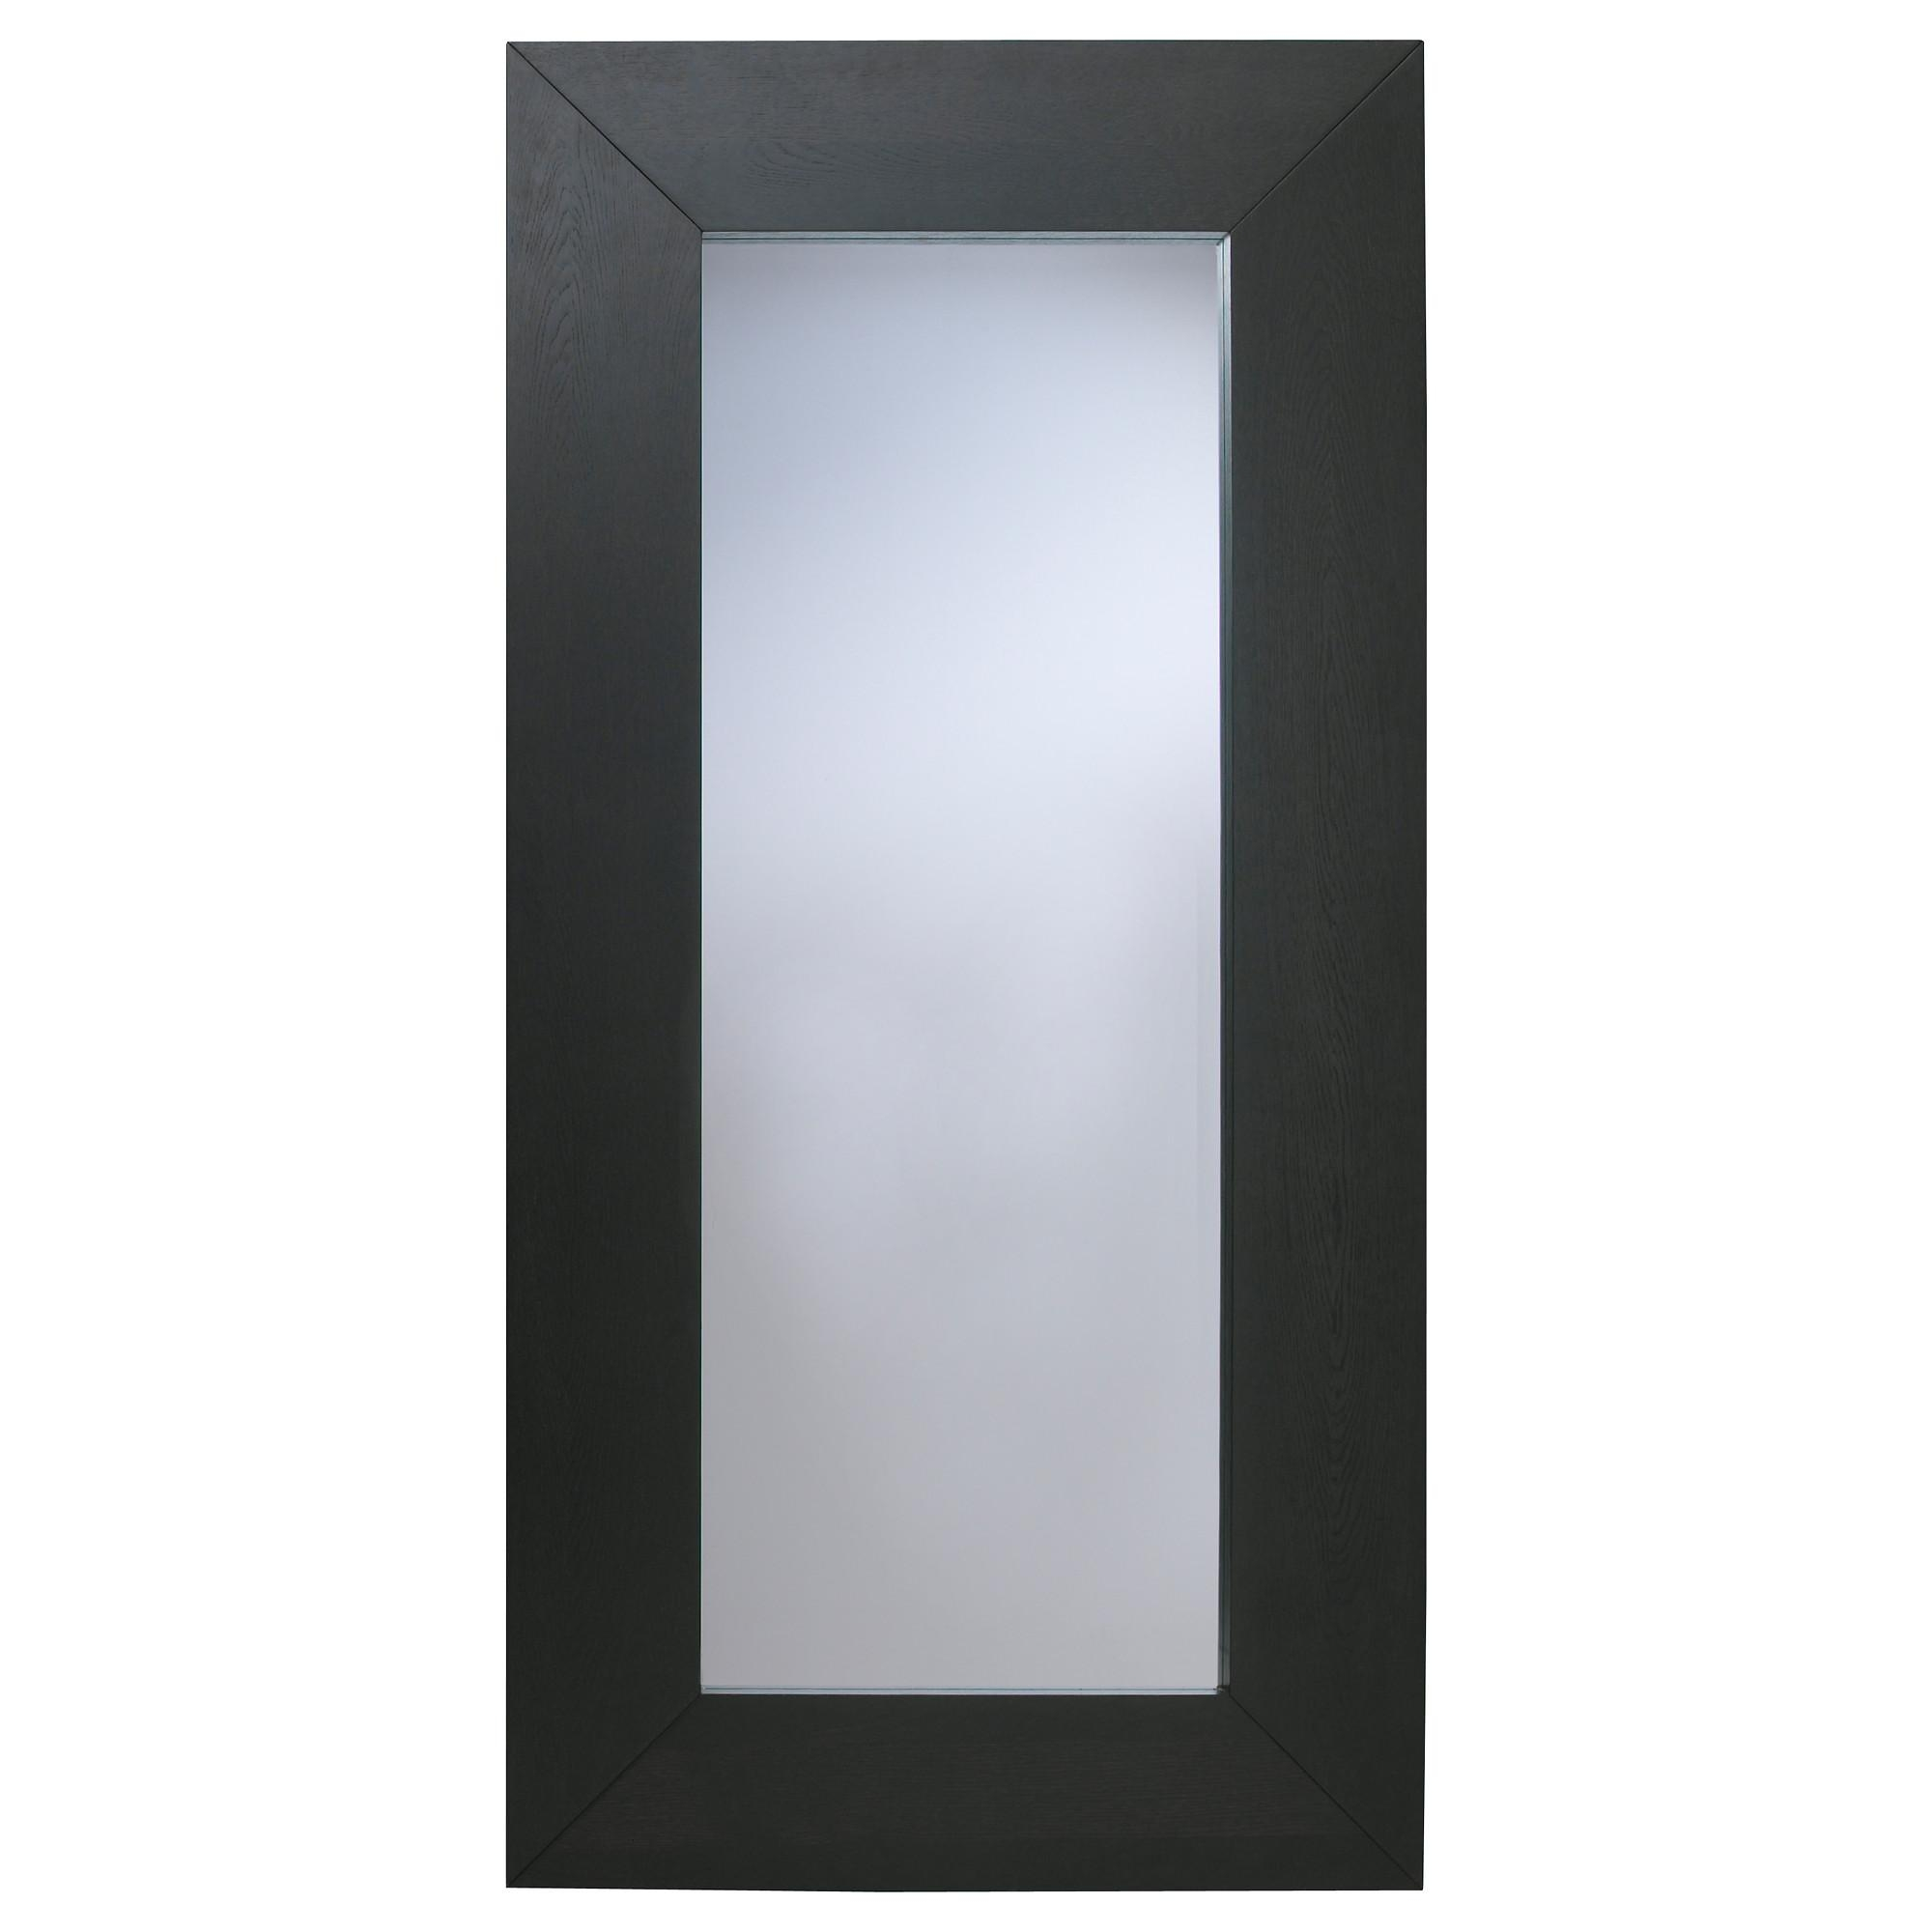 Mongstad Mirror Black Brown 94X190 Cm – Ikea With Long Dressing Mirror (View 12 of 20)